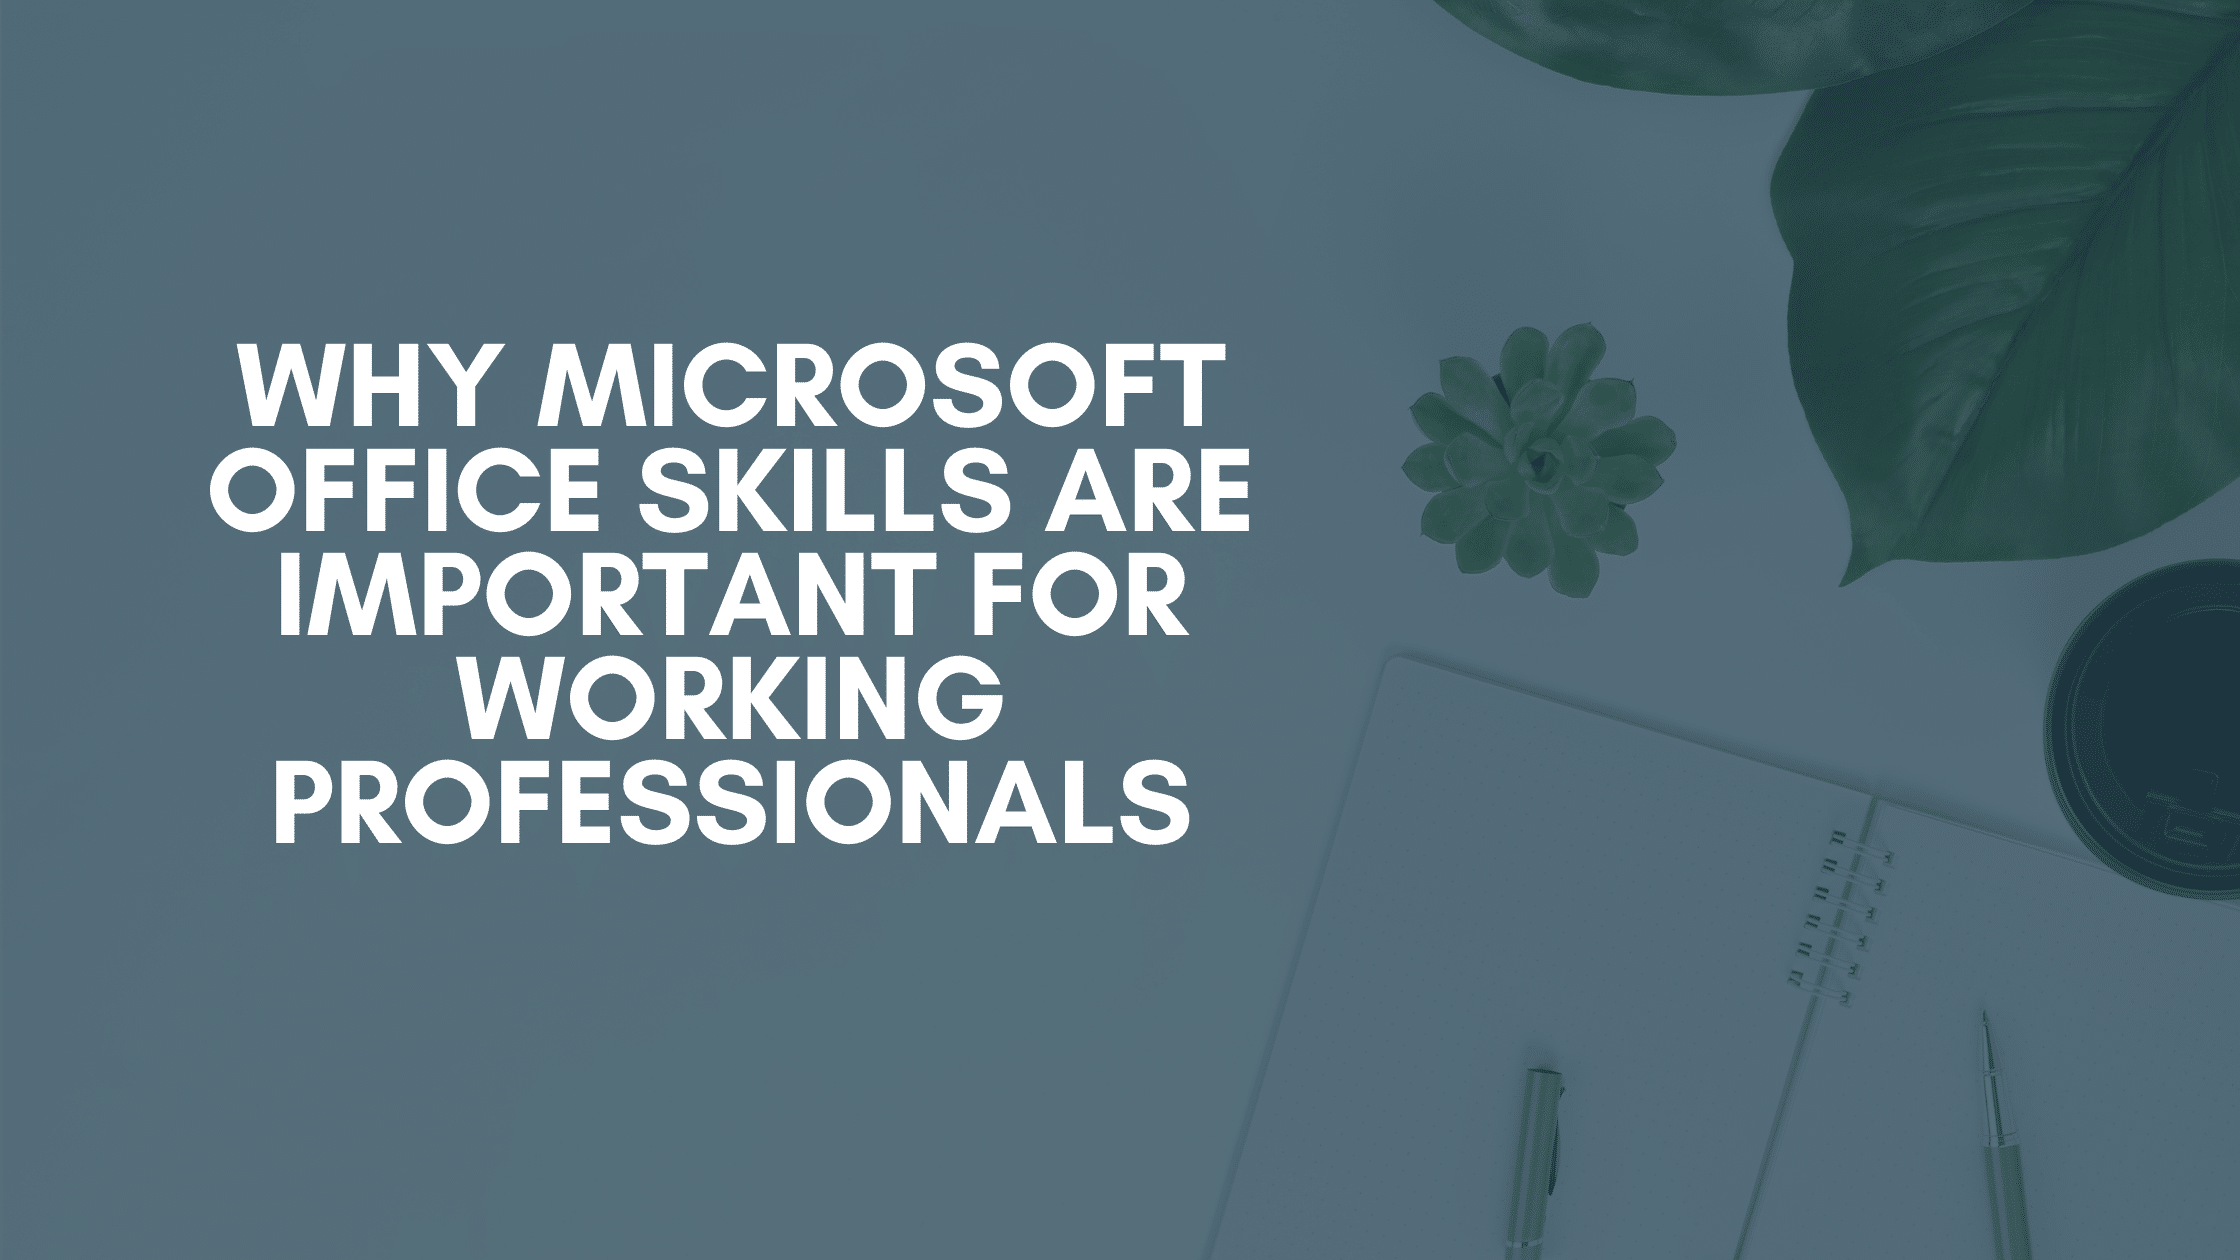 Why Microsoft Office Skills are Important for Working Professionals